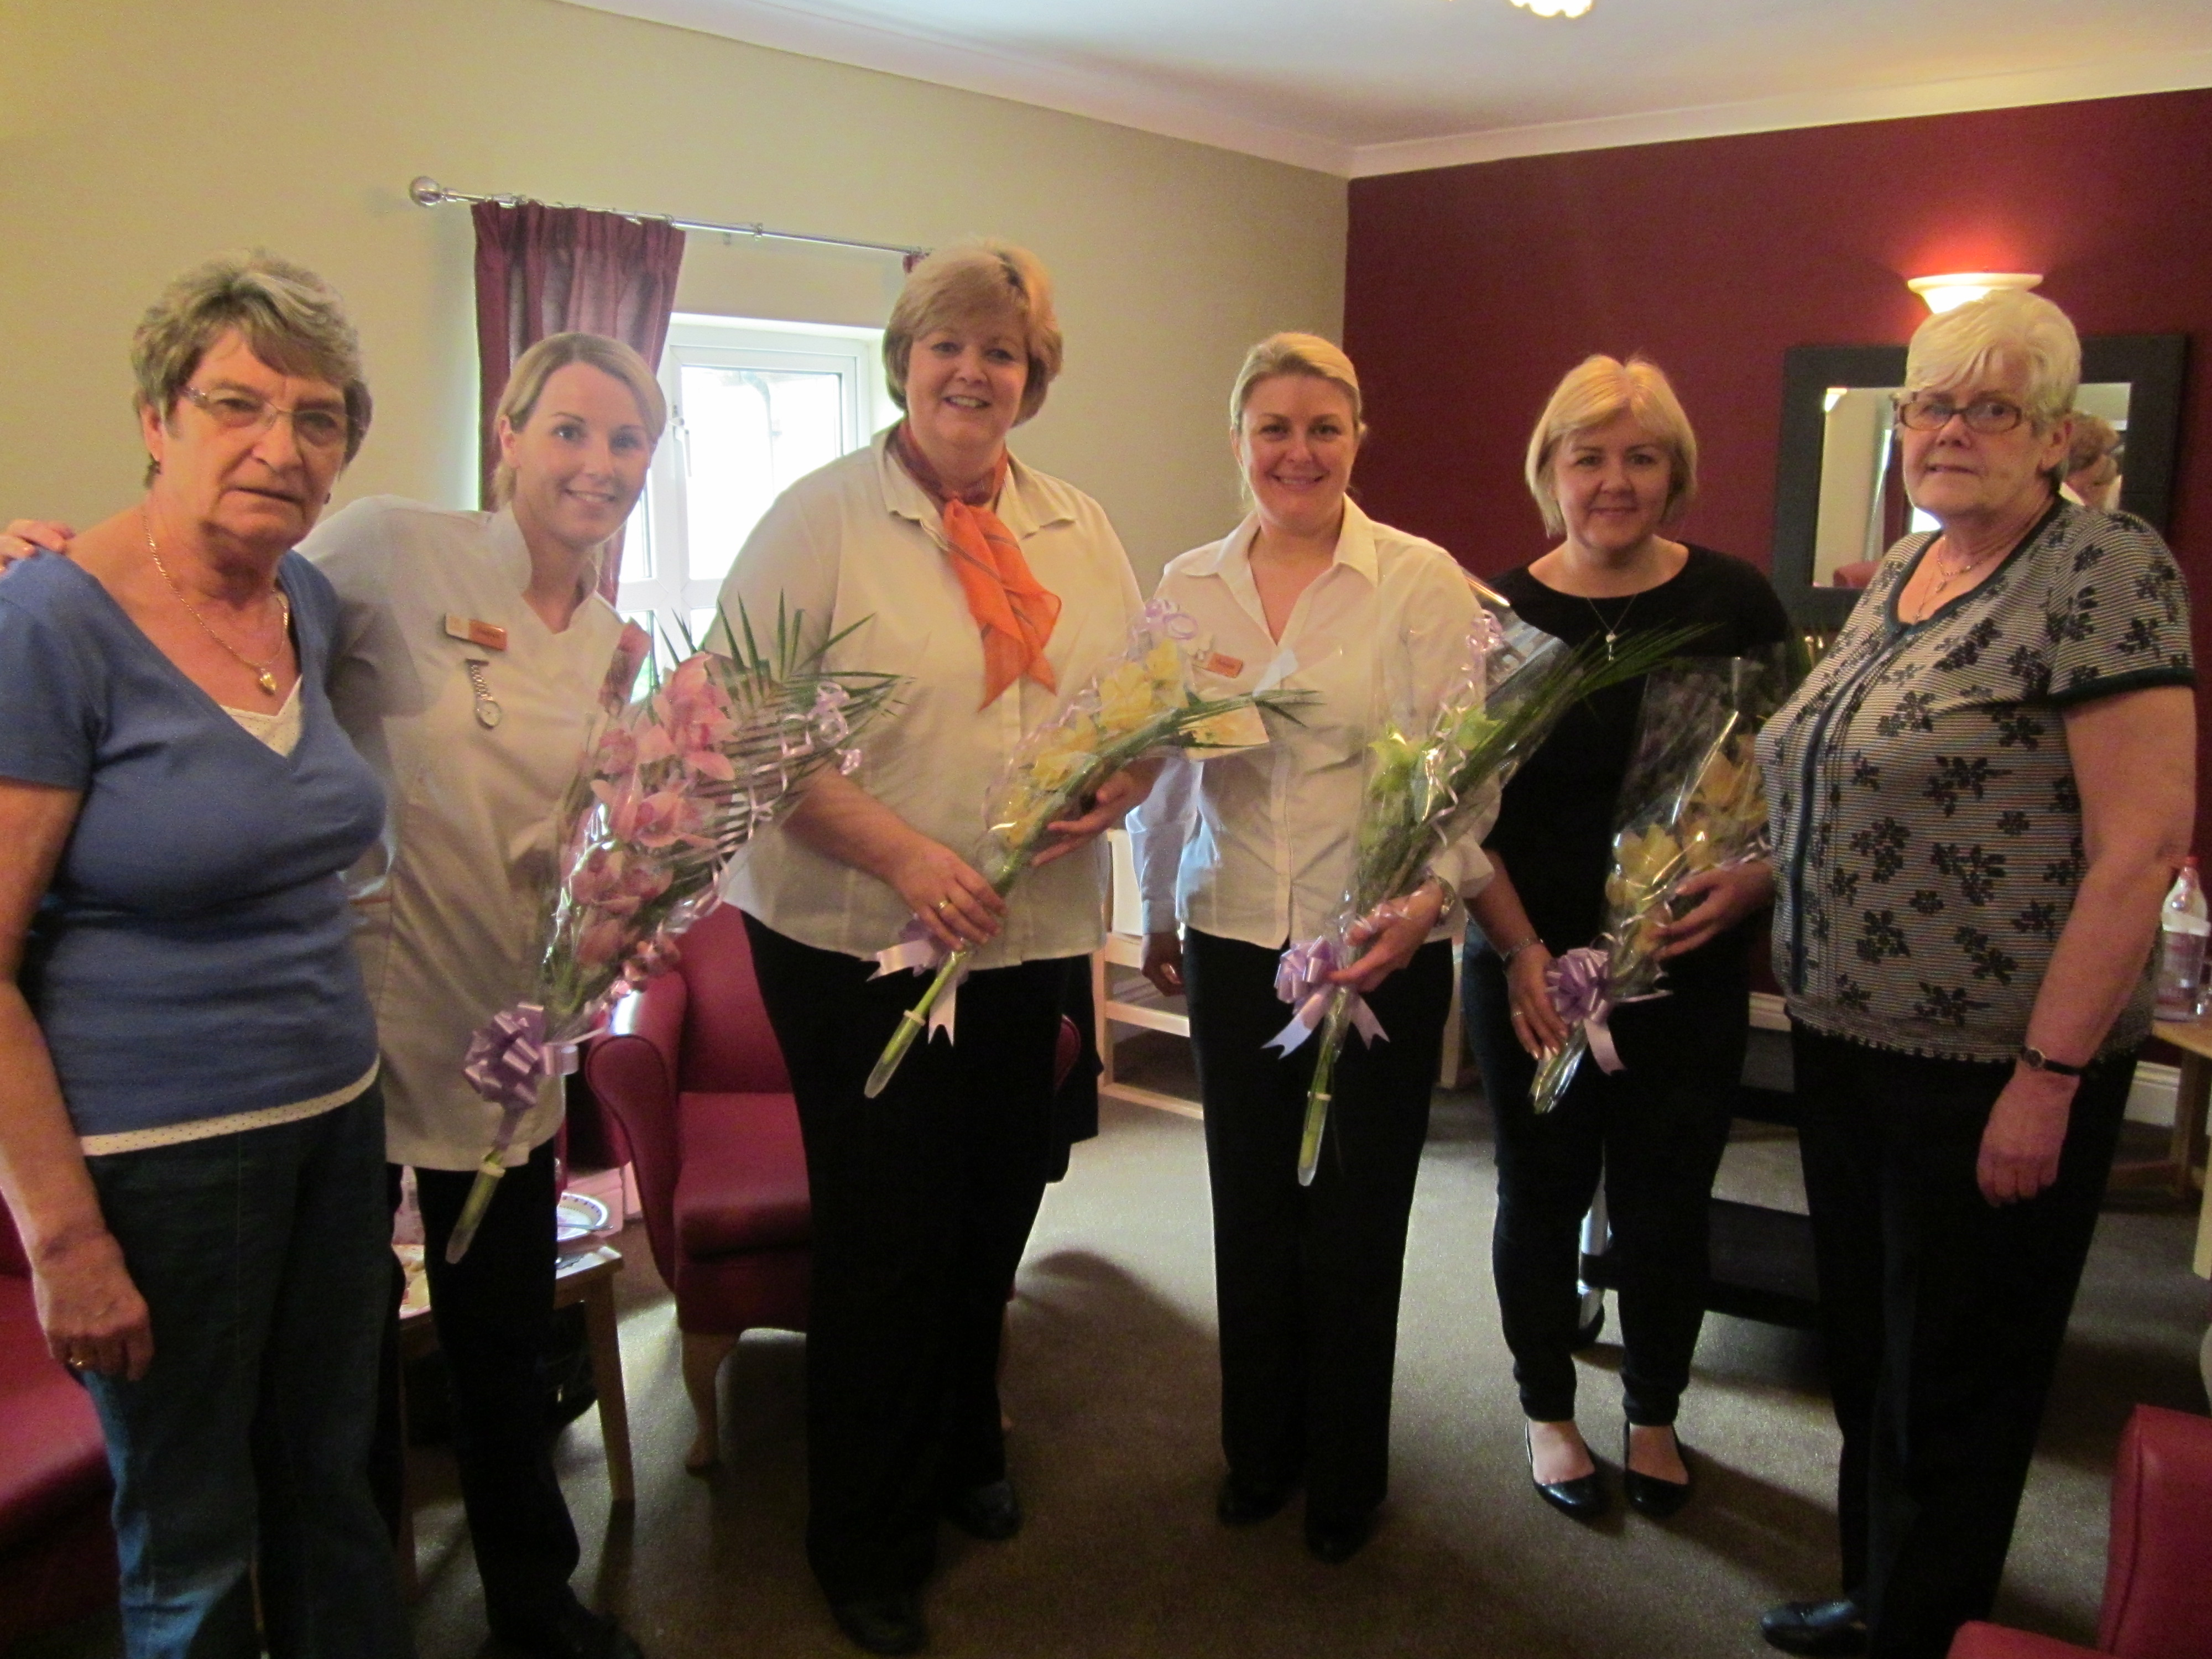 Durham County Family Care Homes